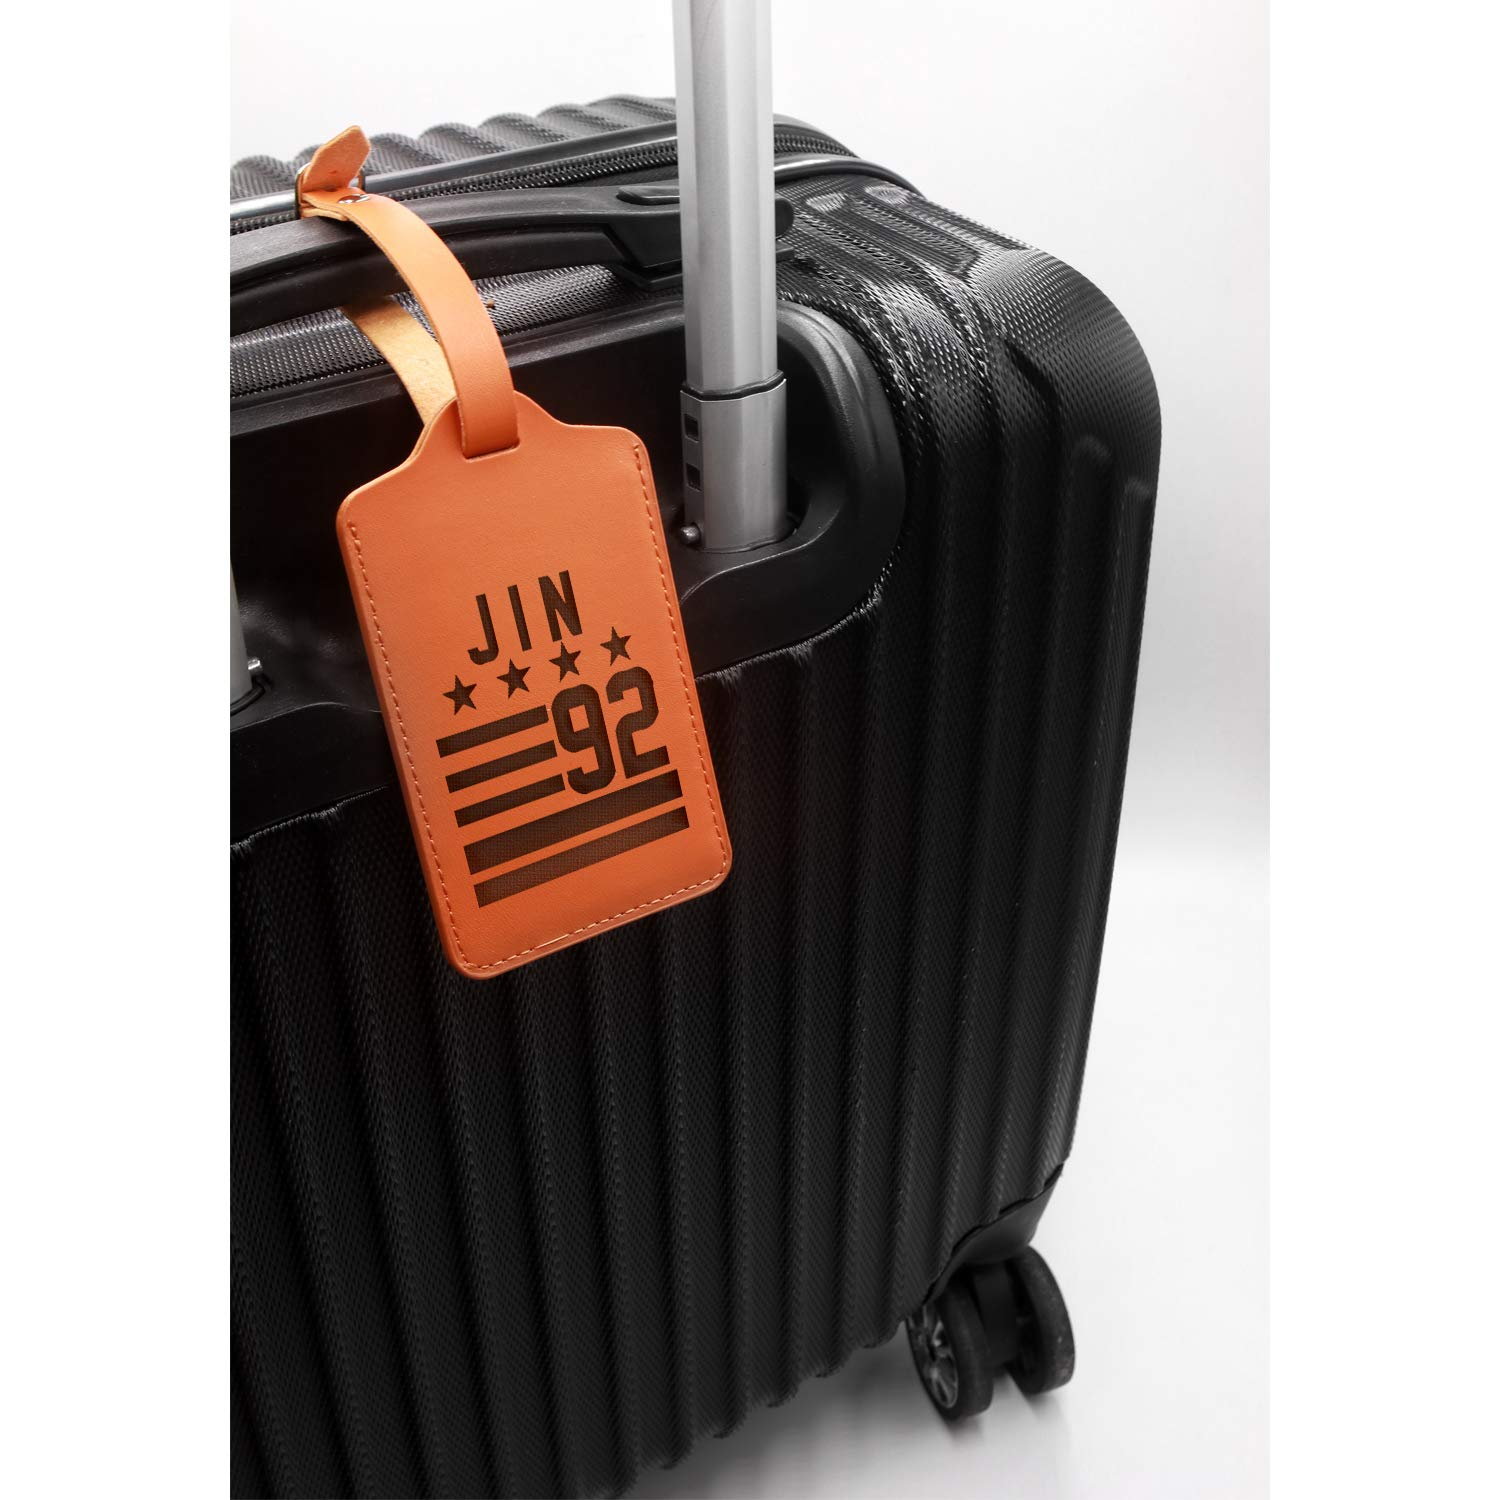 Handcrafted By Mastercraftsmen Hallyu Kpop Bts Jin 92 Engraved Synthetic Pu Leather Luggage Tag - United States Standard For Any Type Of Luggage London Tan - Set Of 2